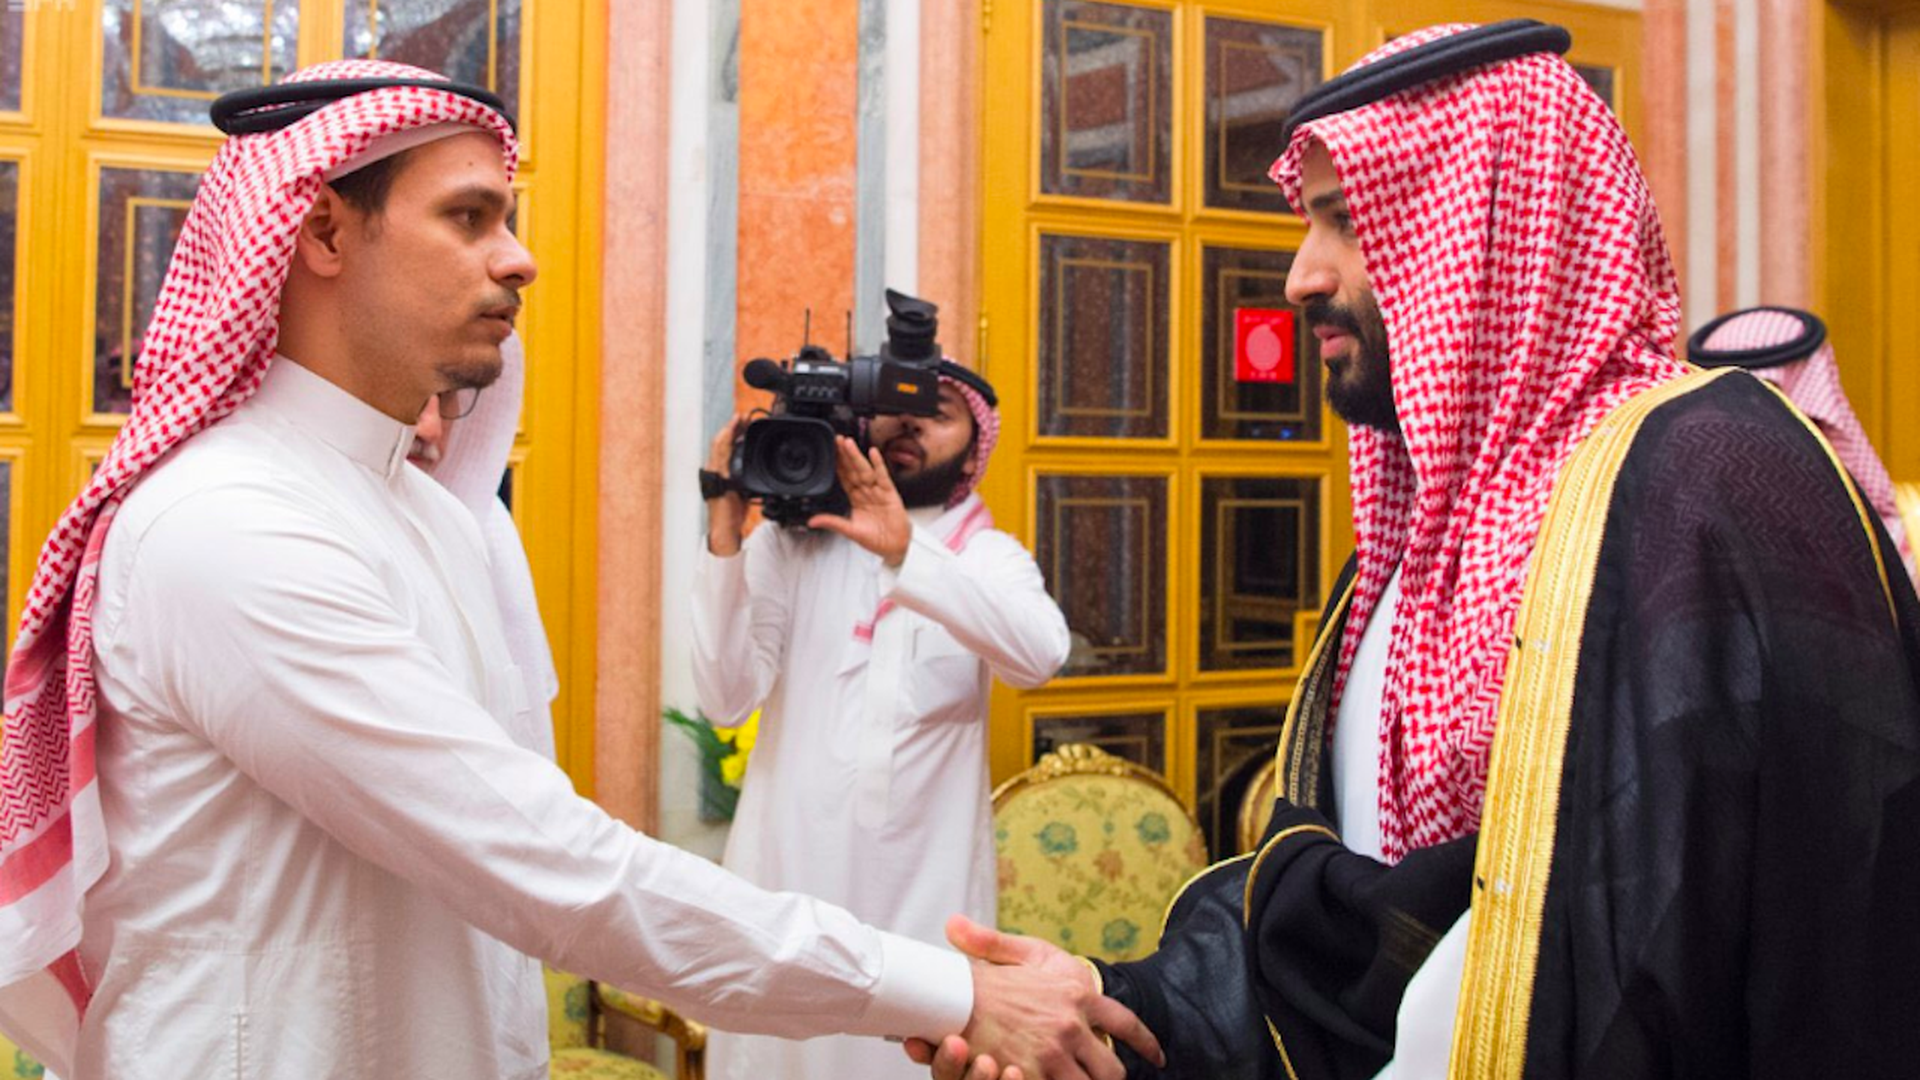 Salah Khashoggi shaking hands with MBS.